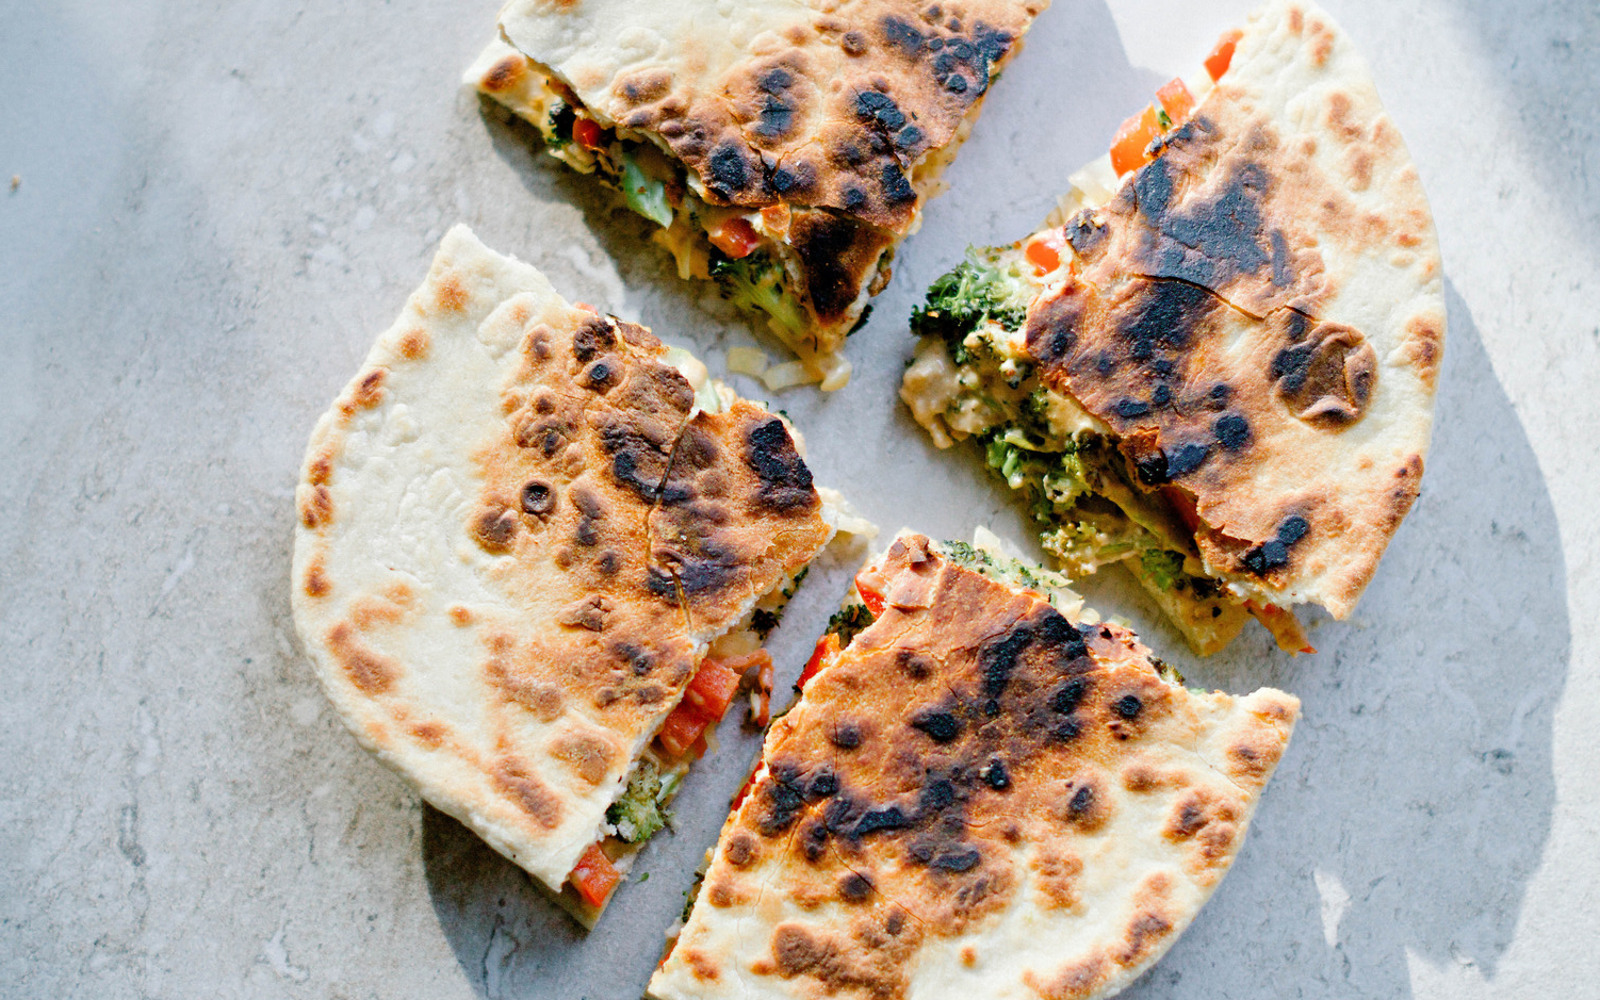 Vegan Roasted Broccoli and Sauerkraut Quesadilla